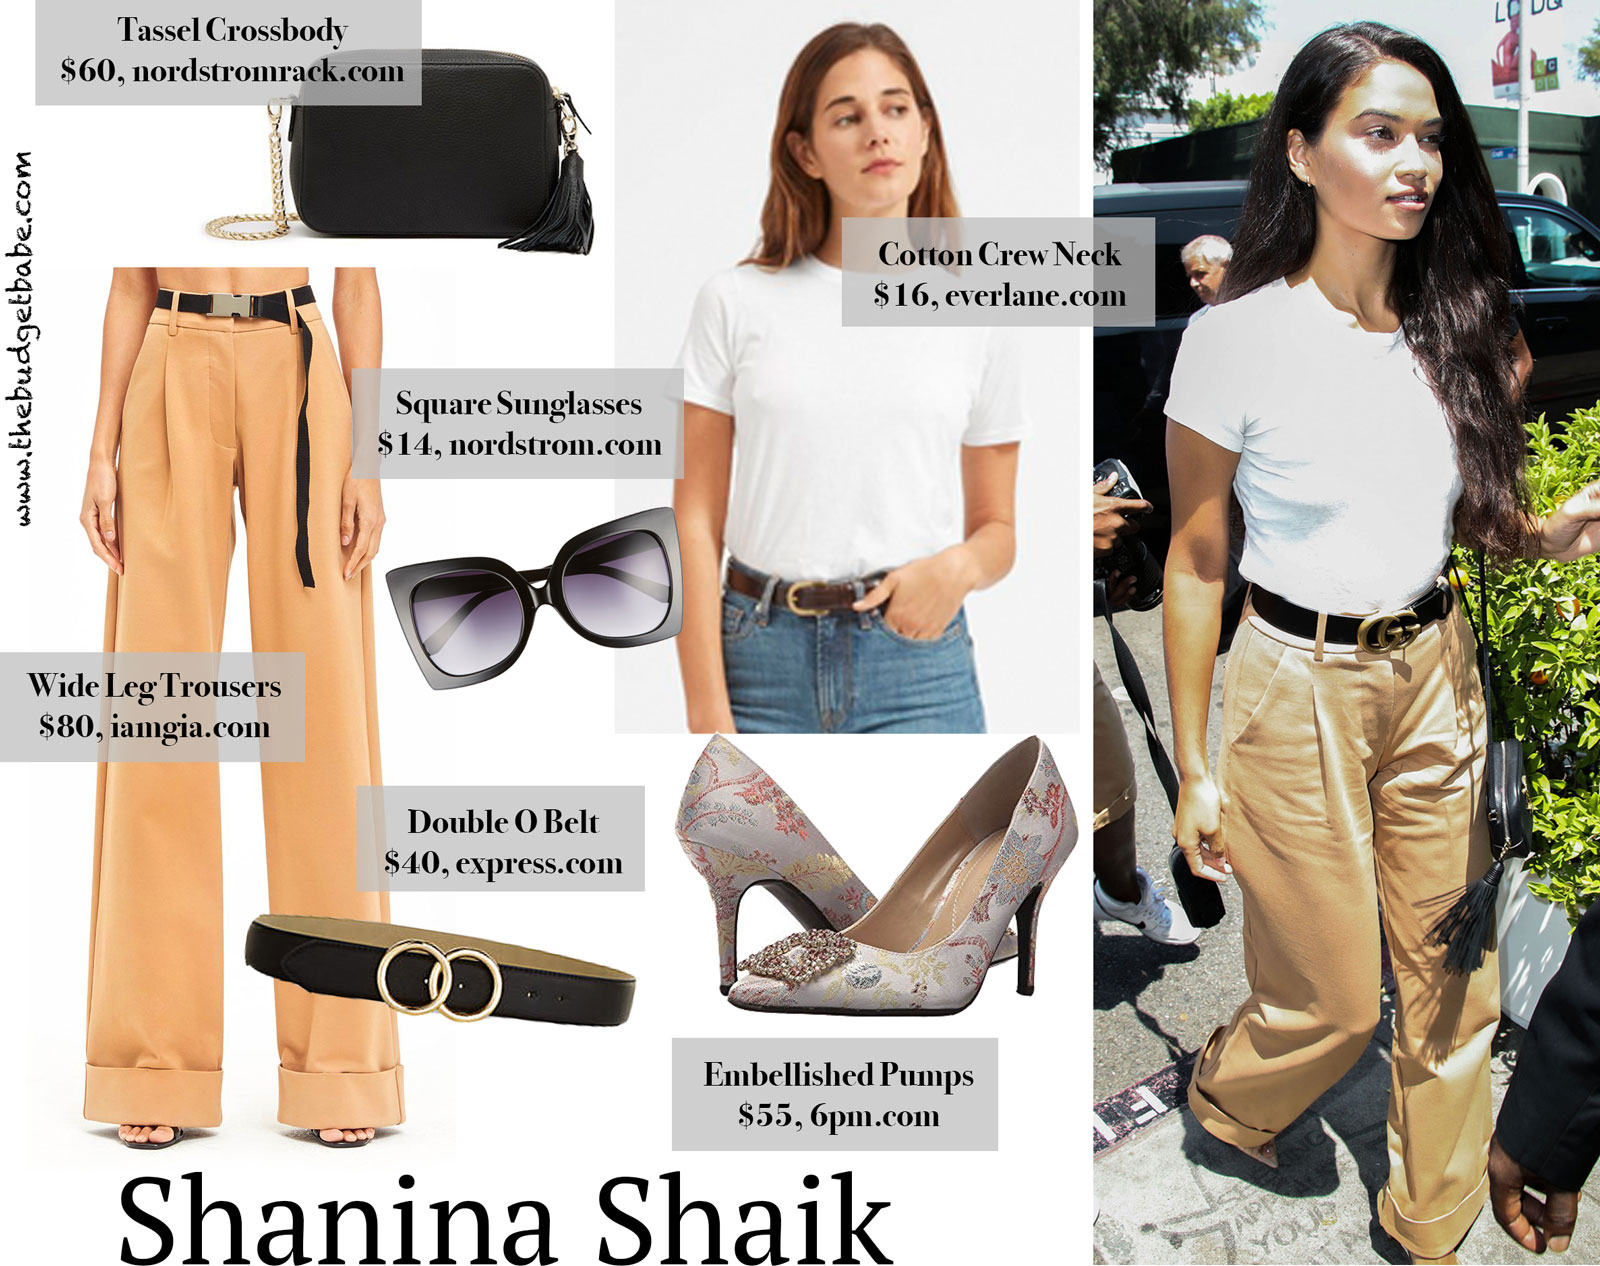 Shanina Shaik Wide Leg Pants and Gucci Belt Look for Less